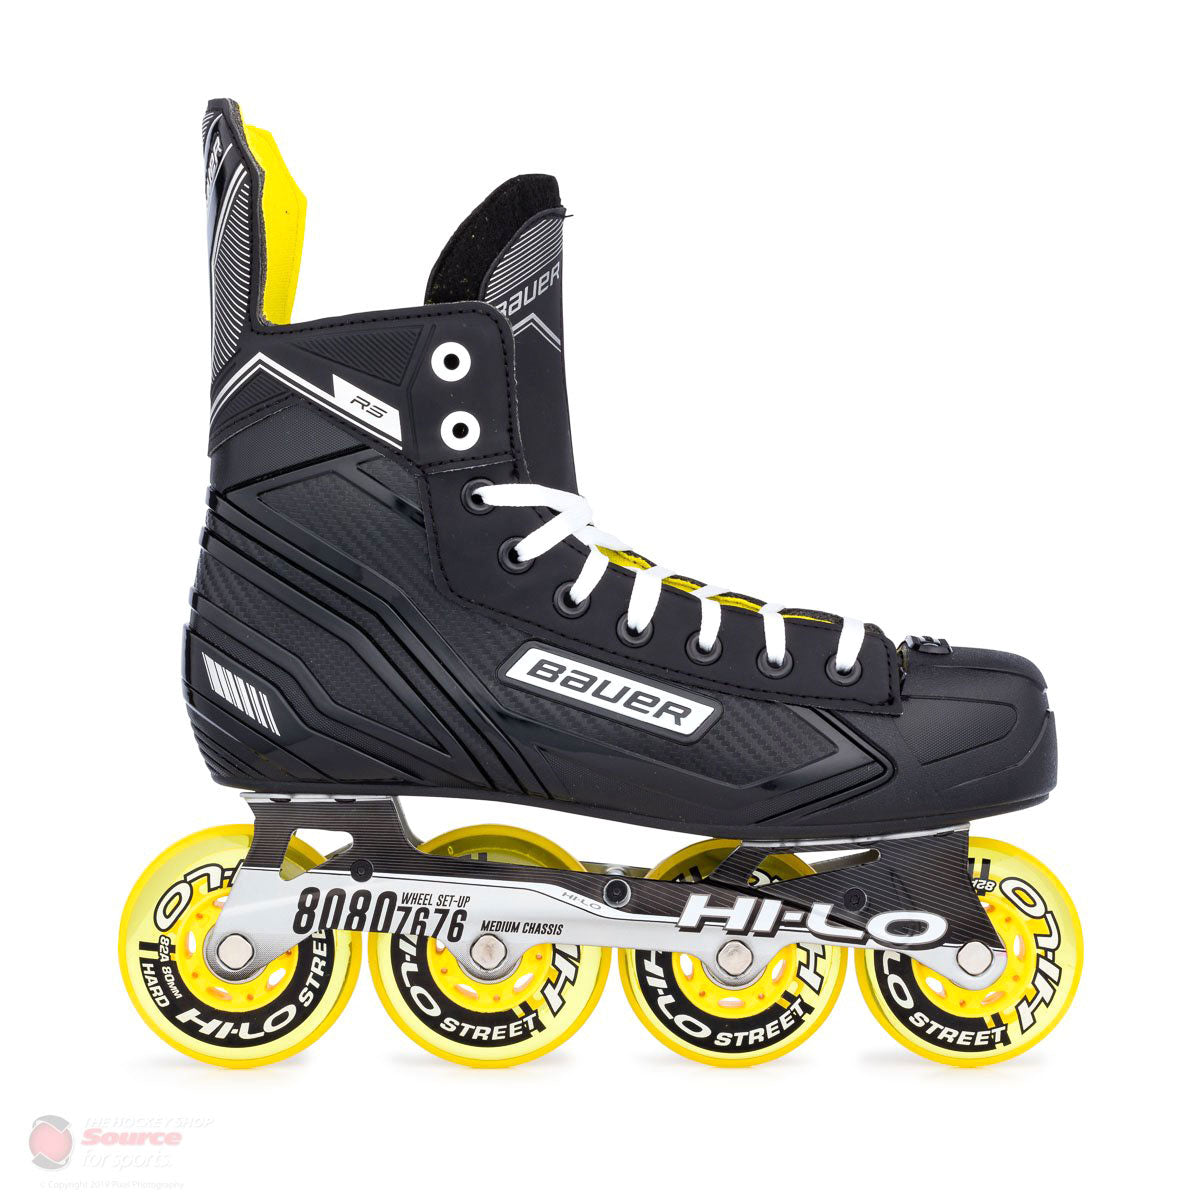 Bauer RS Senior Roller Hockey Skates